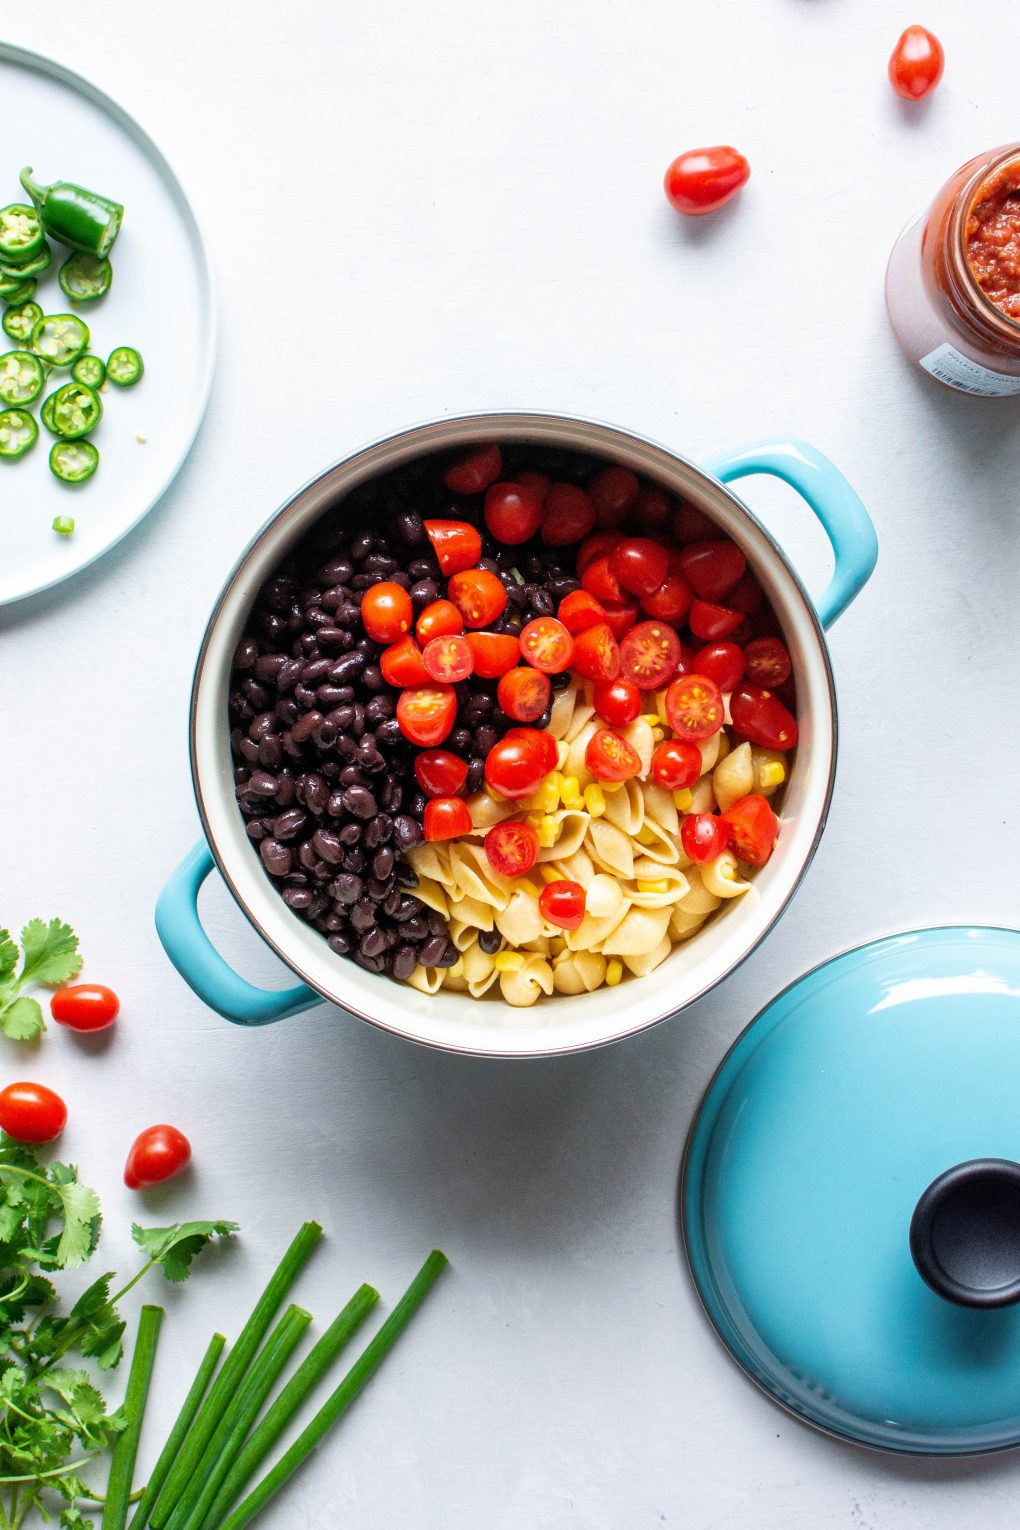 A blue pot of pasta, corn, black beans, and halved cherry tomatoes surrounded by cherry tomatoes, green onions, and fresh herbs on a white background.